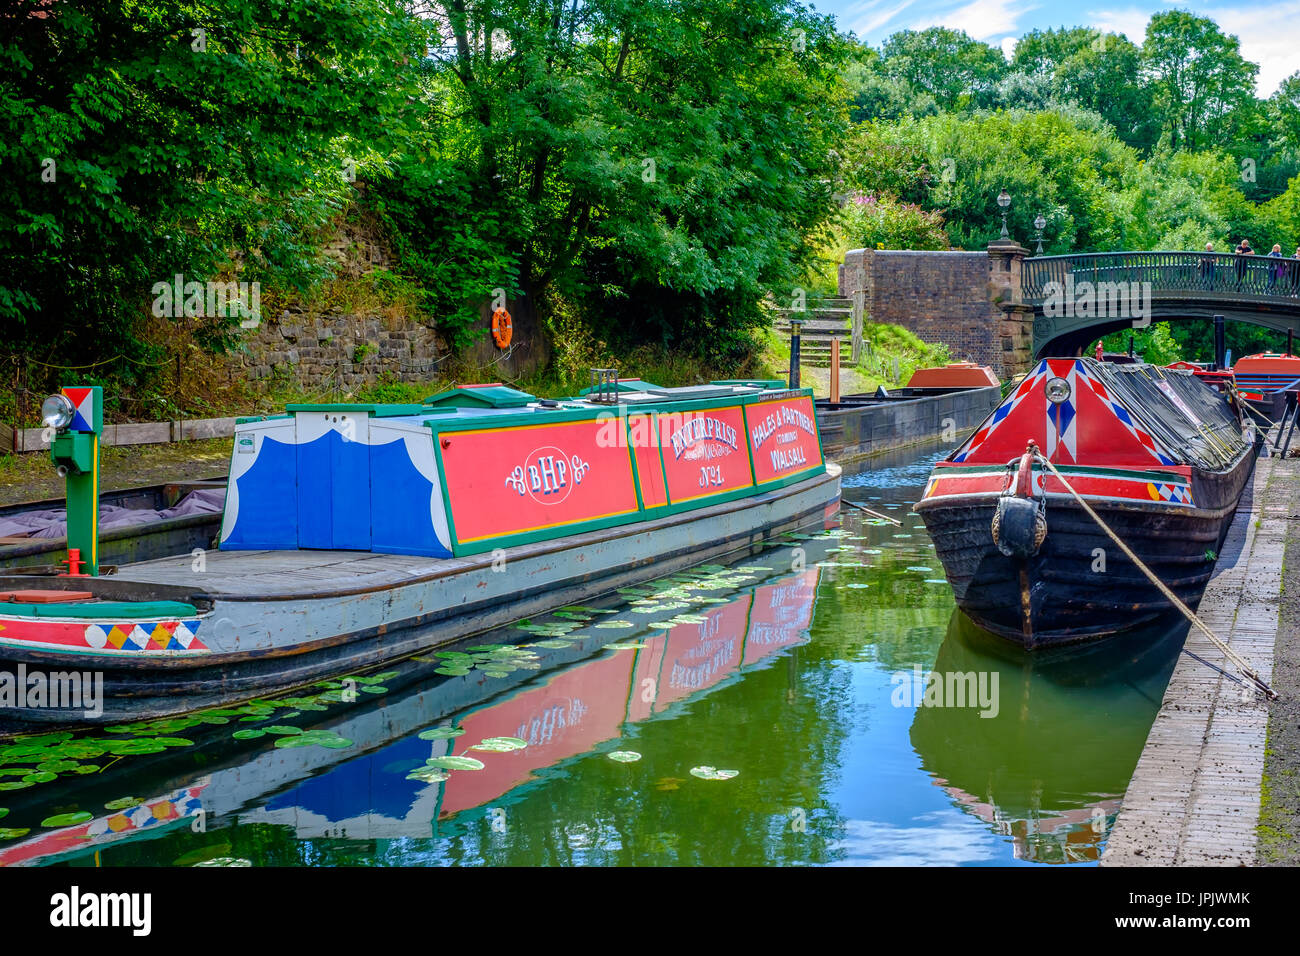 Canal Boats at Black Country Living Museum - Stock Image